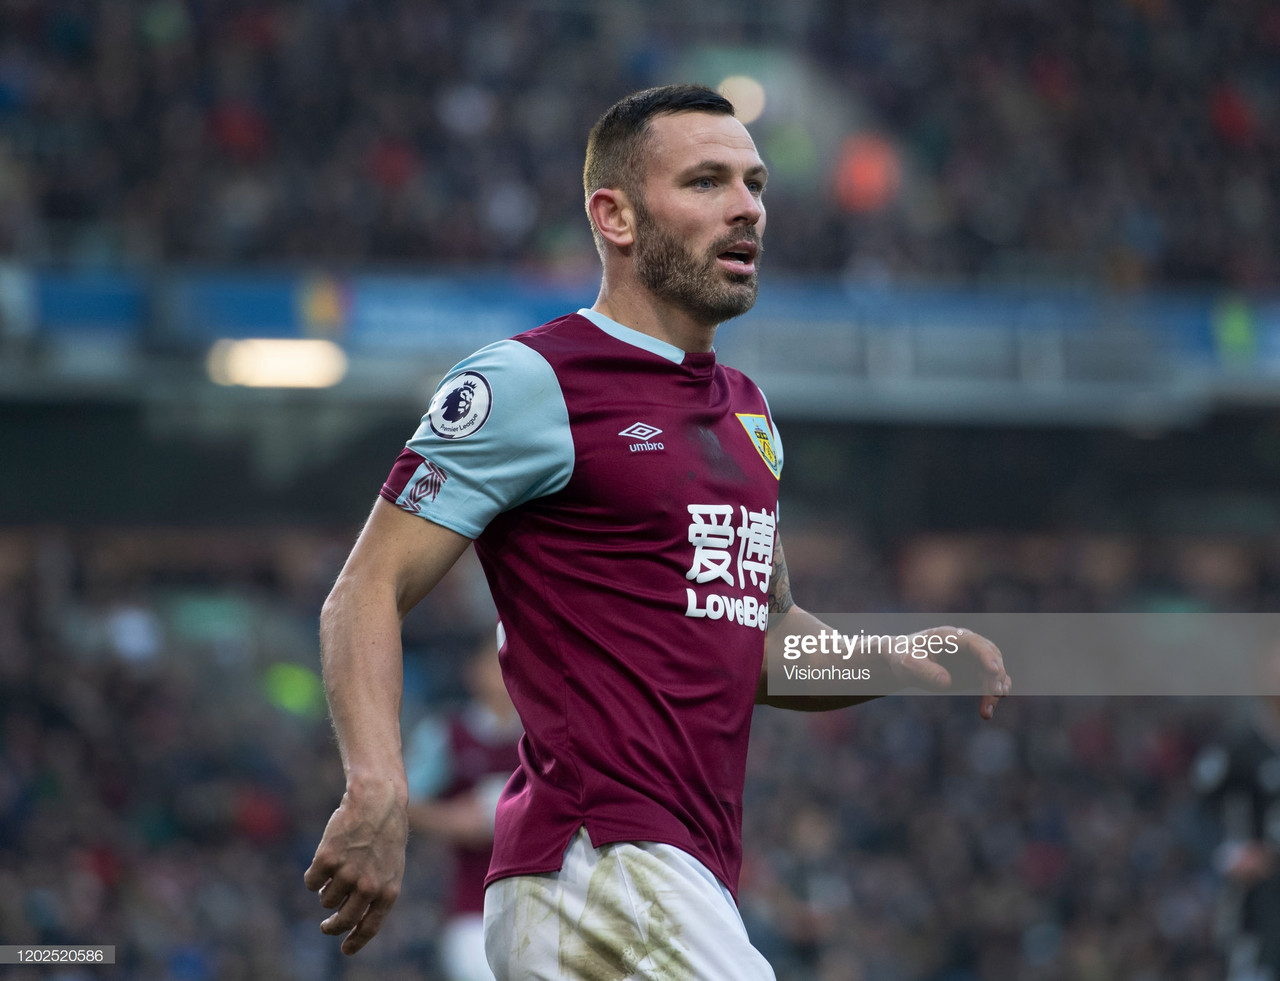 Opinion: Is Bardsley ahead of Lowton in the pecking order for the right-back position?